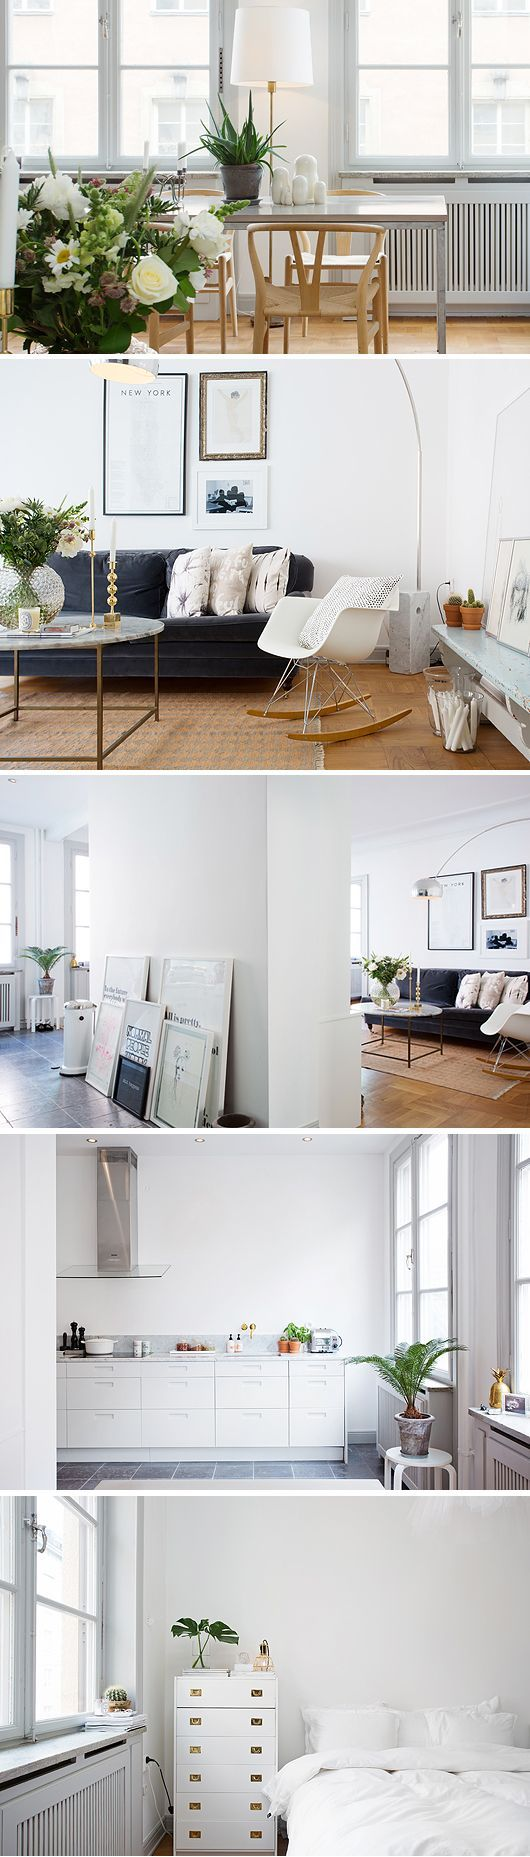 Scandinavian design. Some really smart room composition happening here.